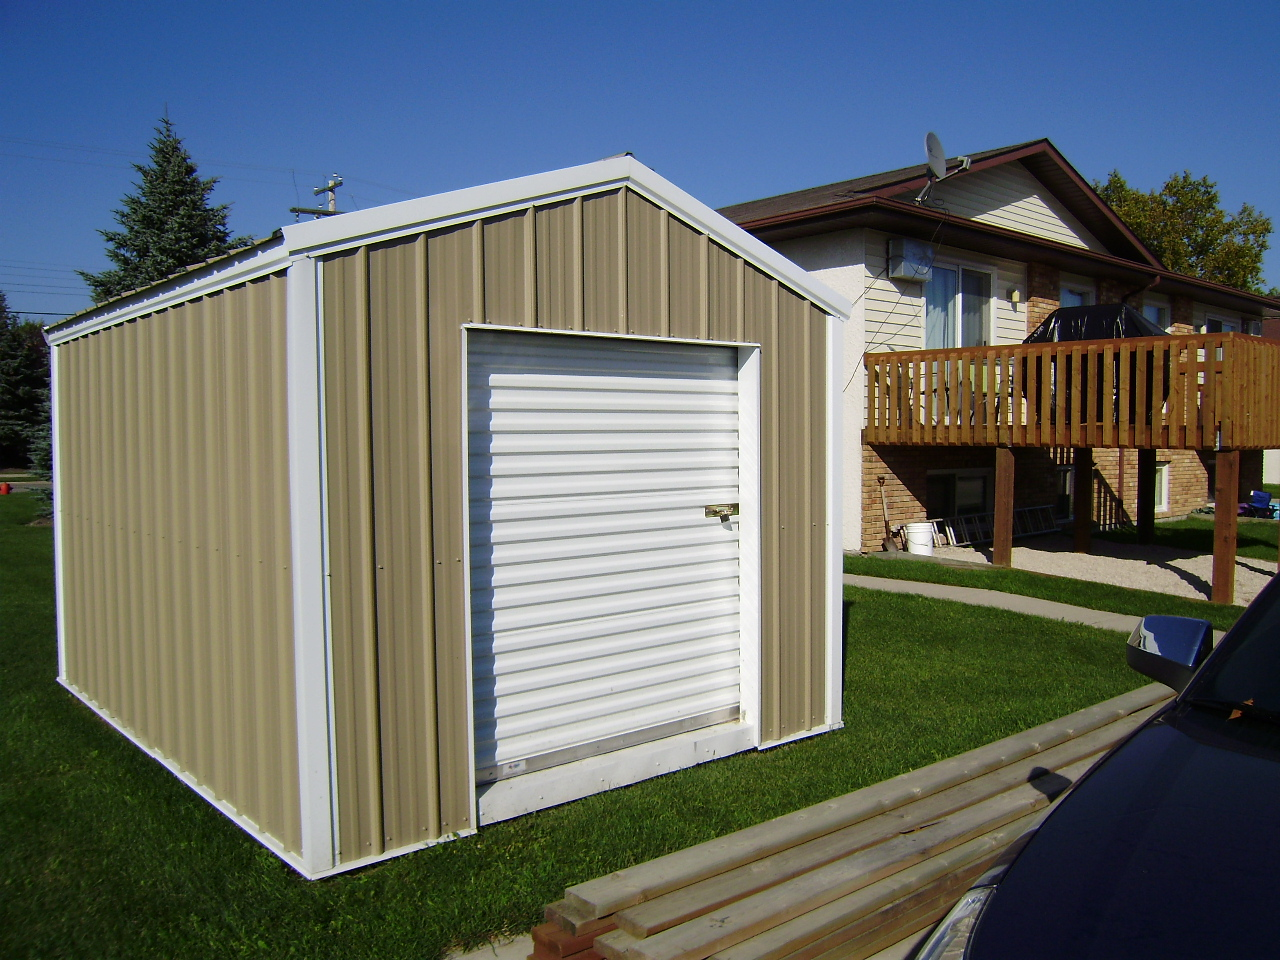 Design Schuur Tool Shed Plans Simple Steps In Building A Tool Shed And